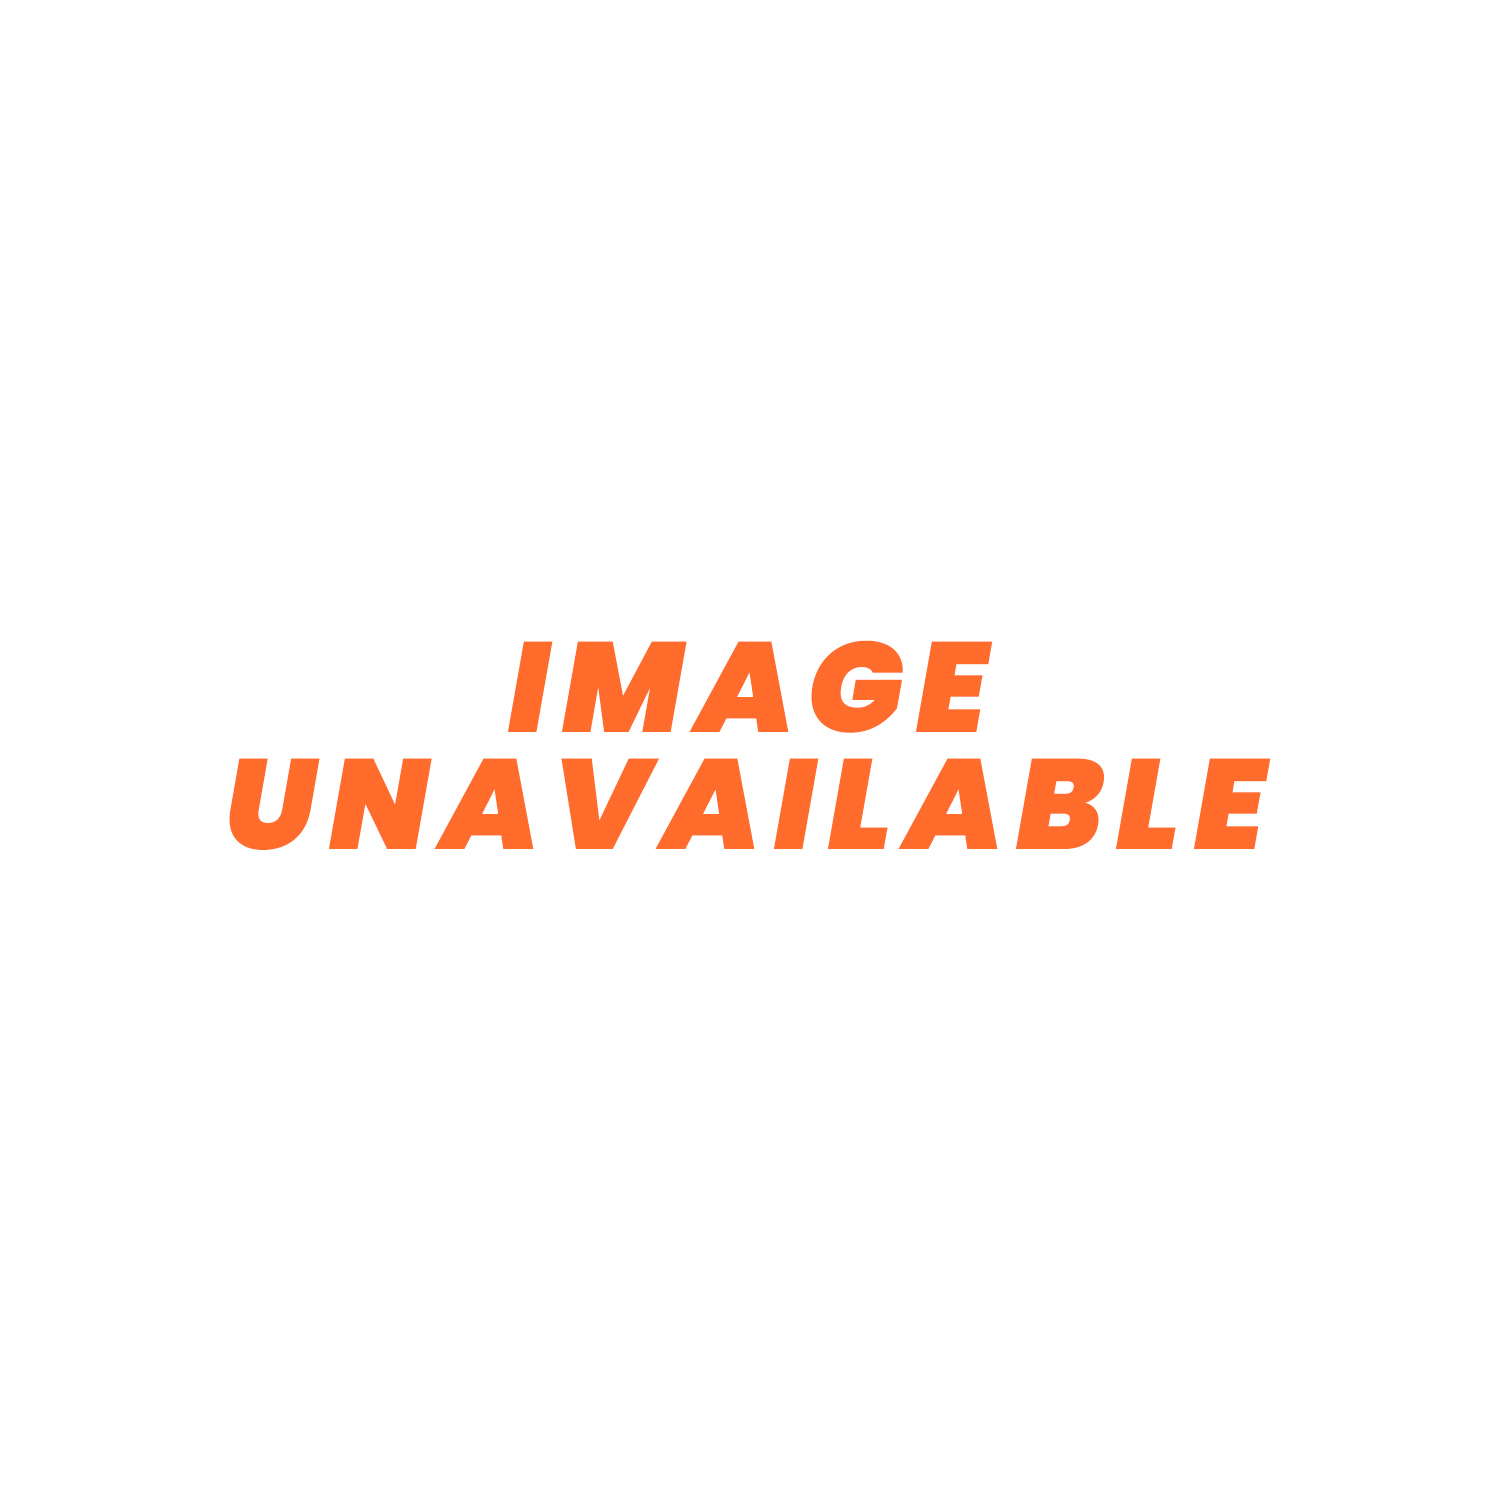 2.4kw Cubby Heater - 12v